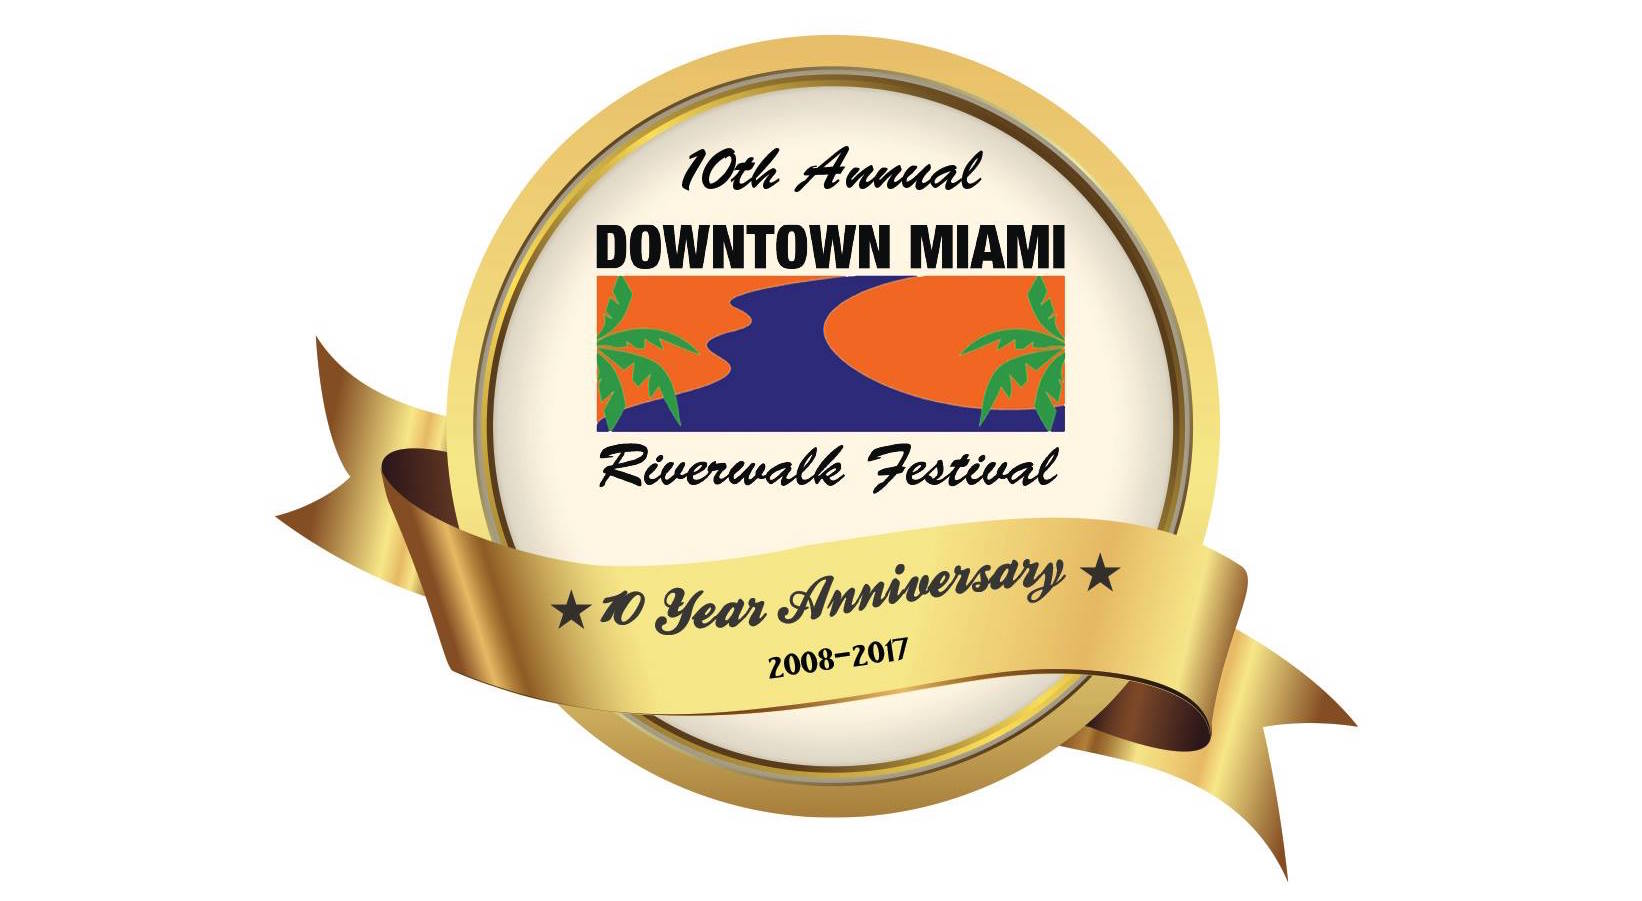 novembre que faire à miami en novembre 2017 agenda des sorties à miami évènements de novembre à miami miami riverwalk festival downtown blog miami off road